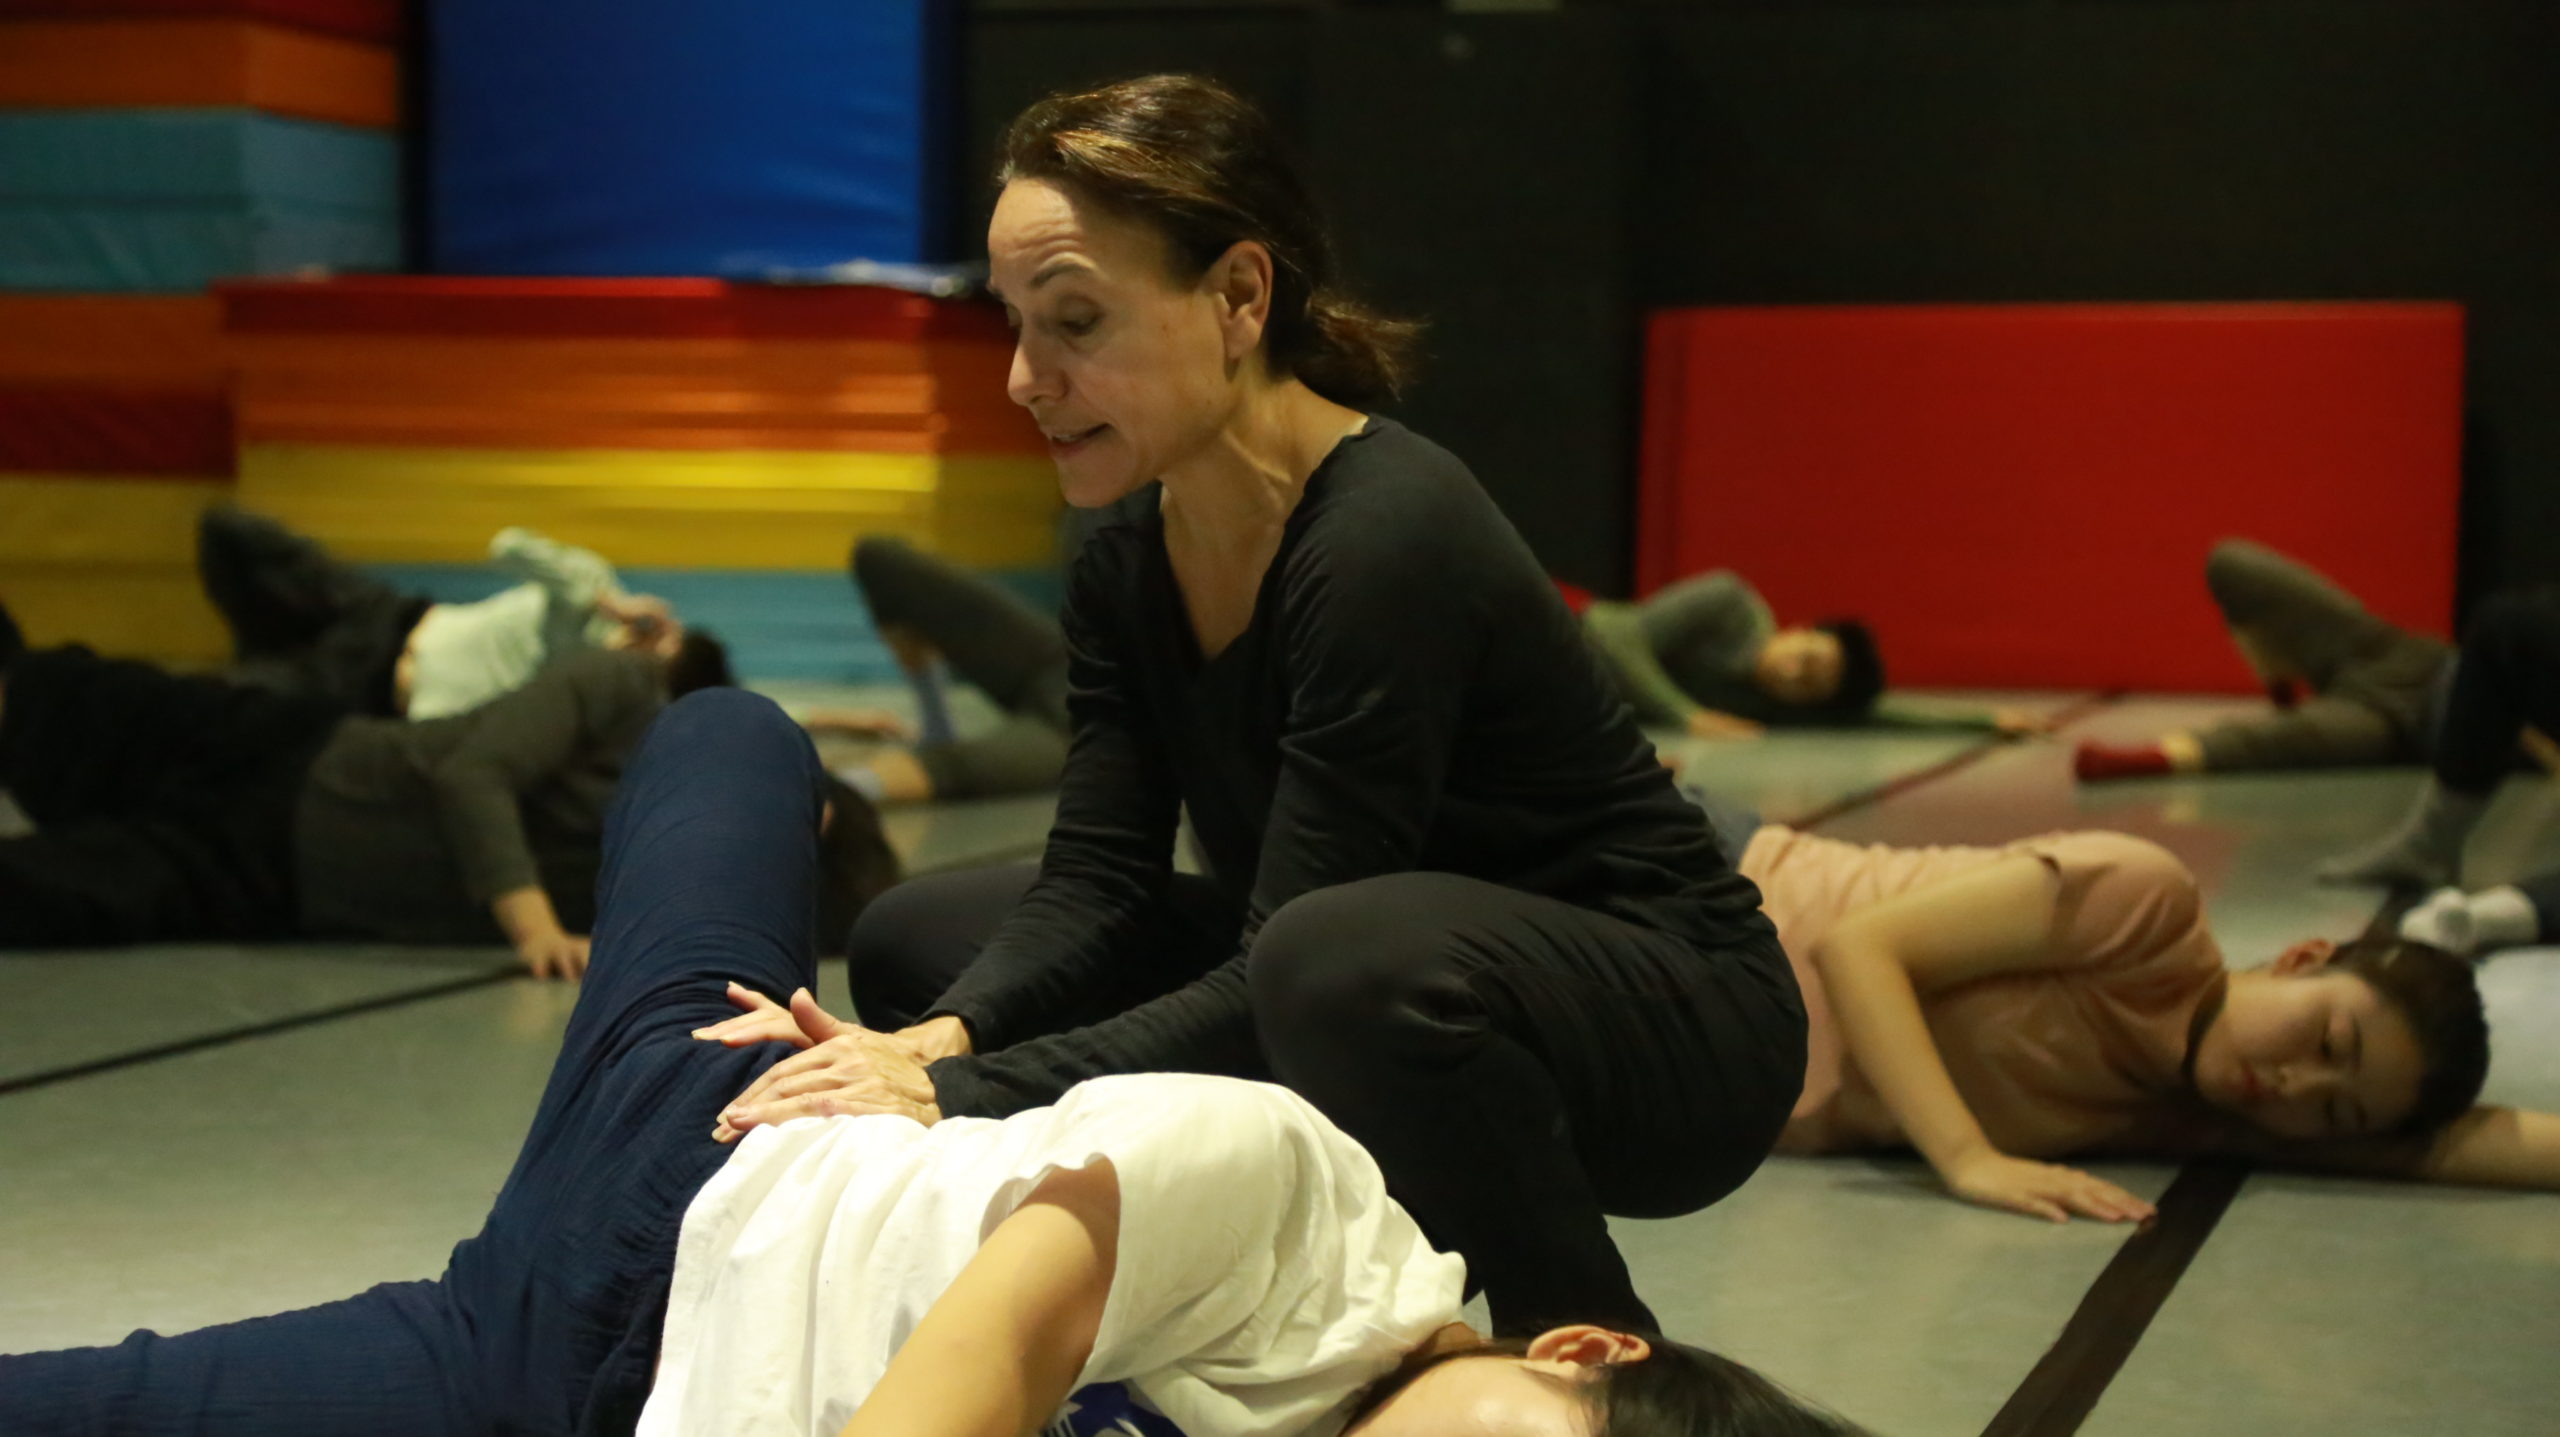 Pamela Pietro squats over a student laying on her side on the ground, adjusting her torso.